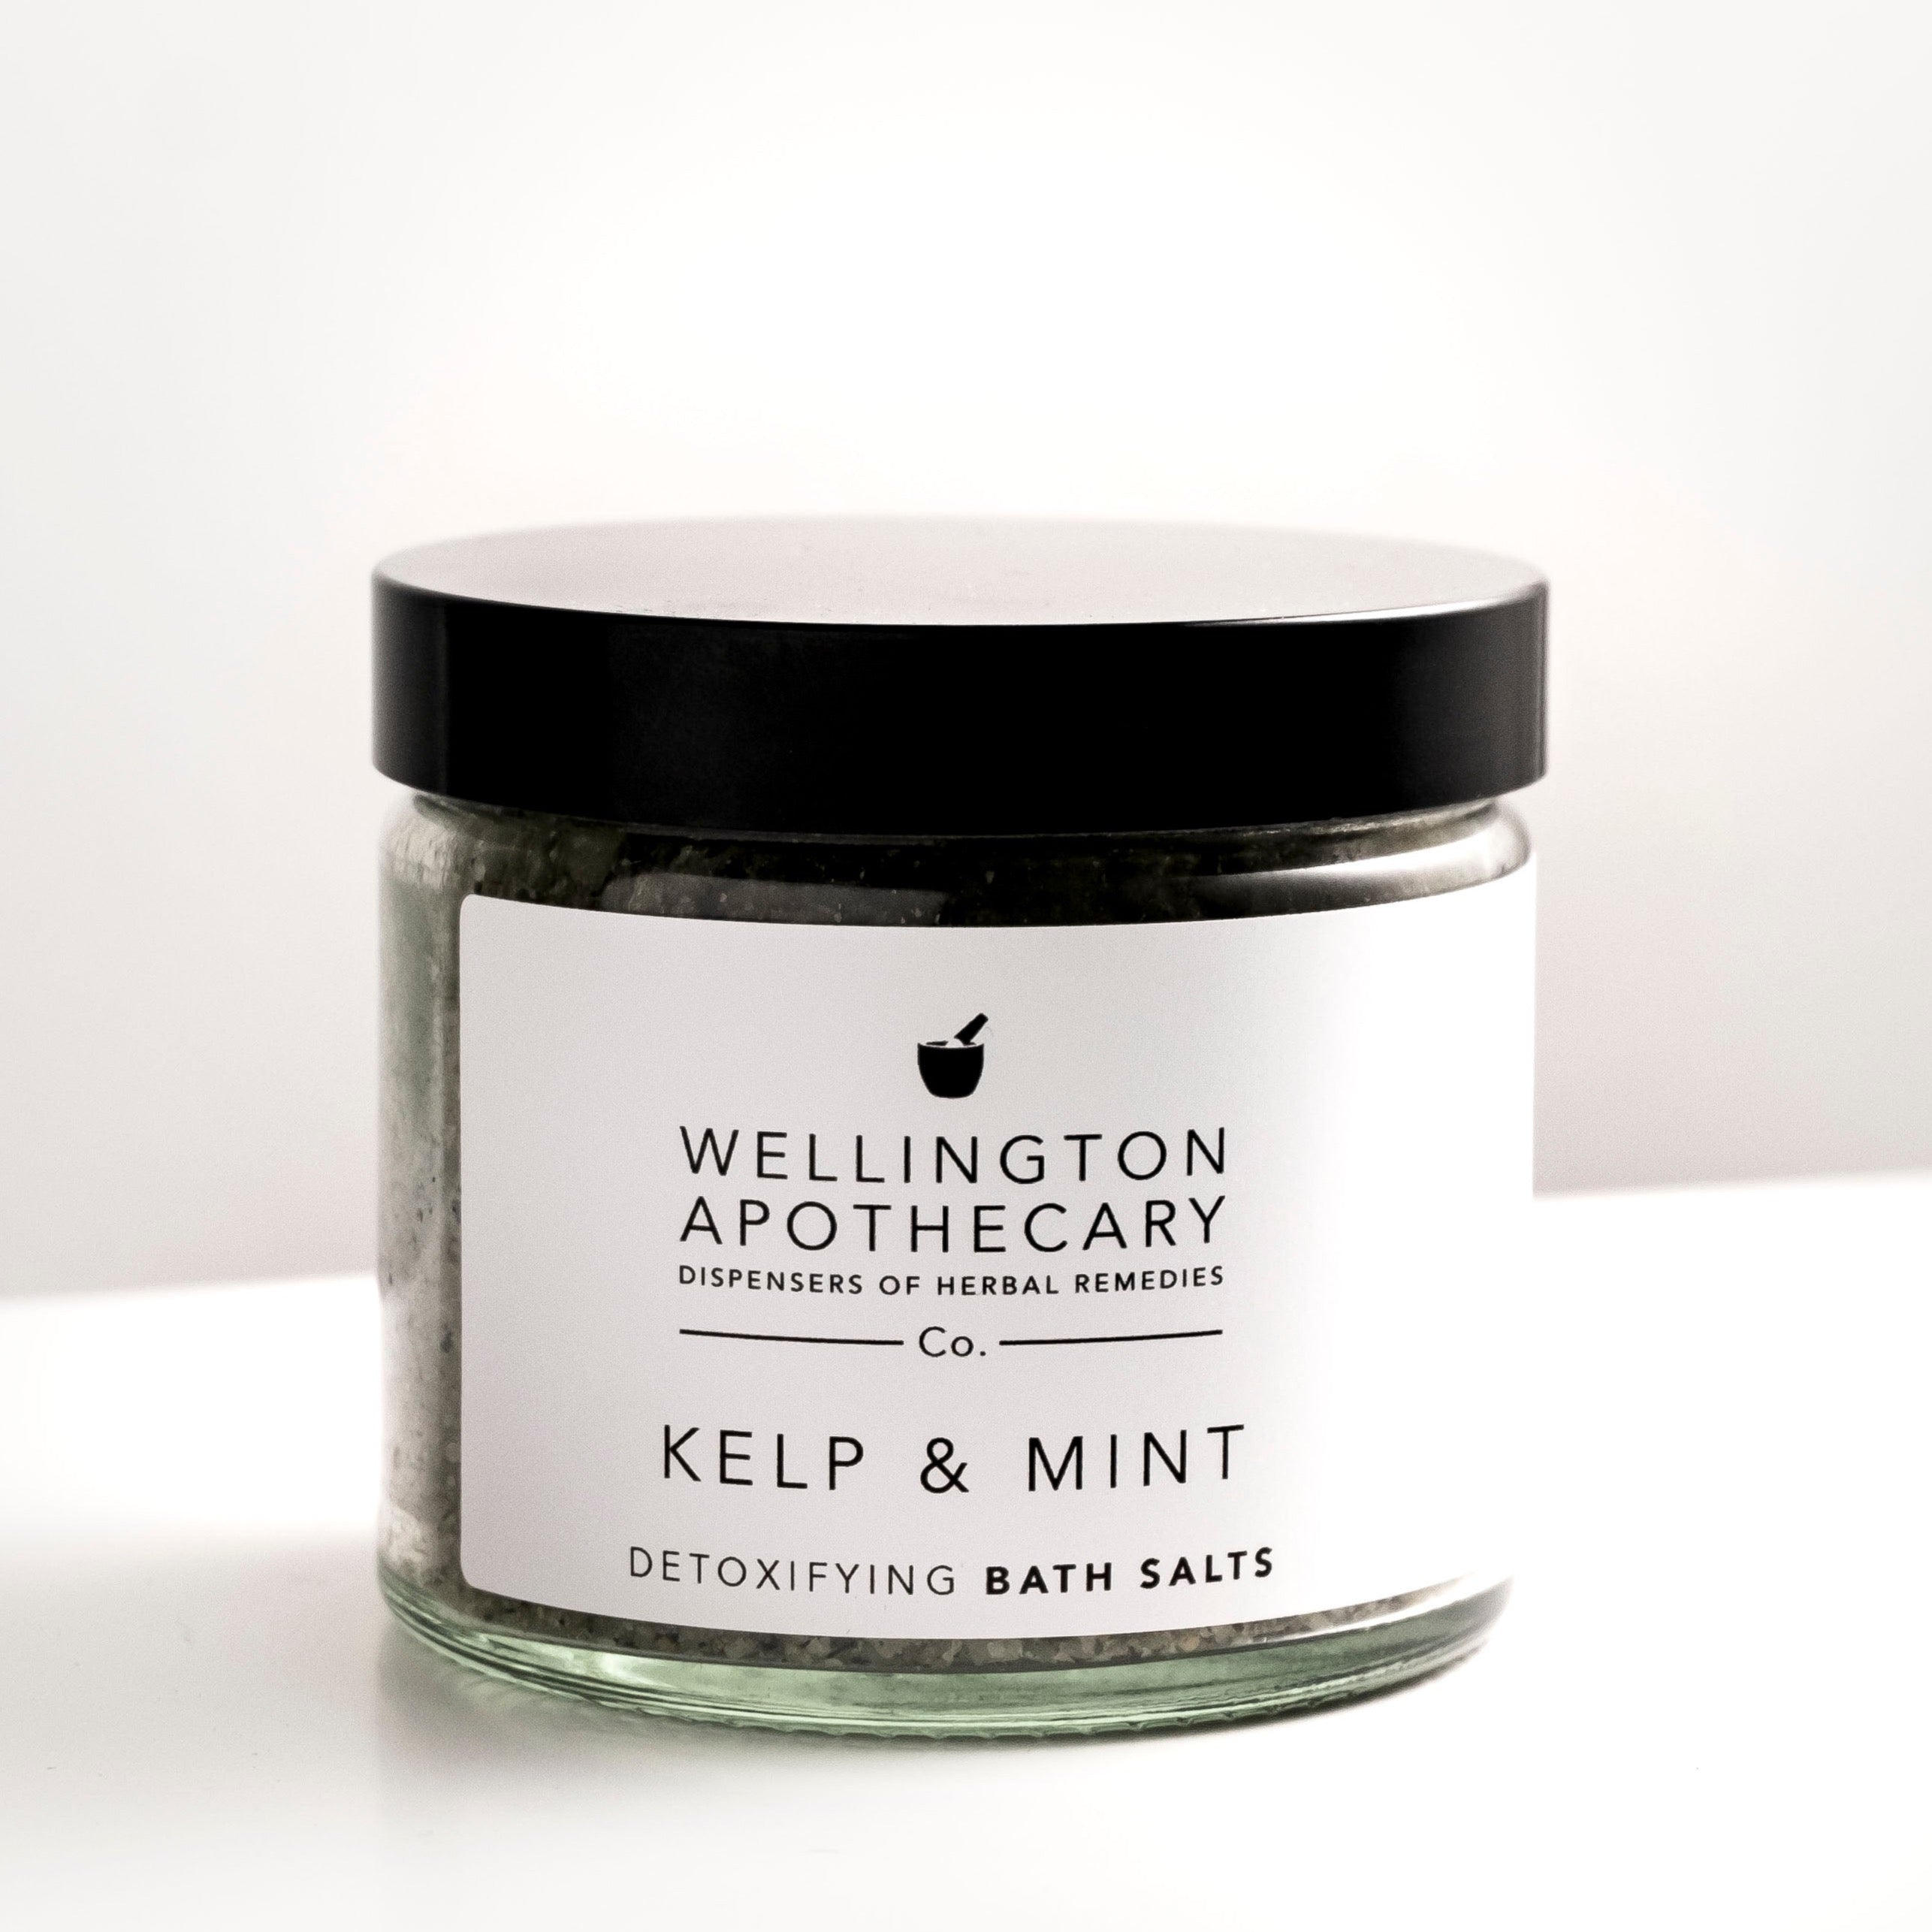 Kelp & Mint Bath Salts